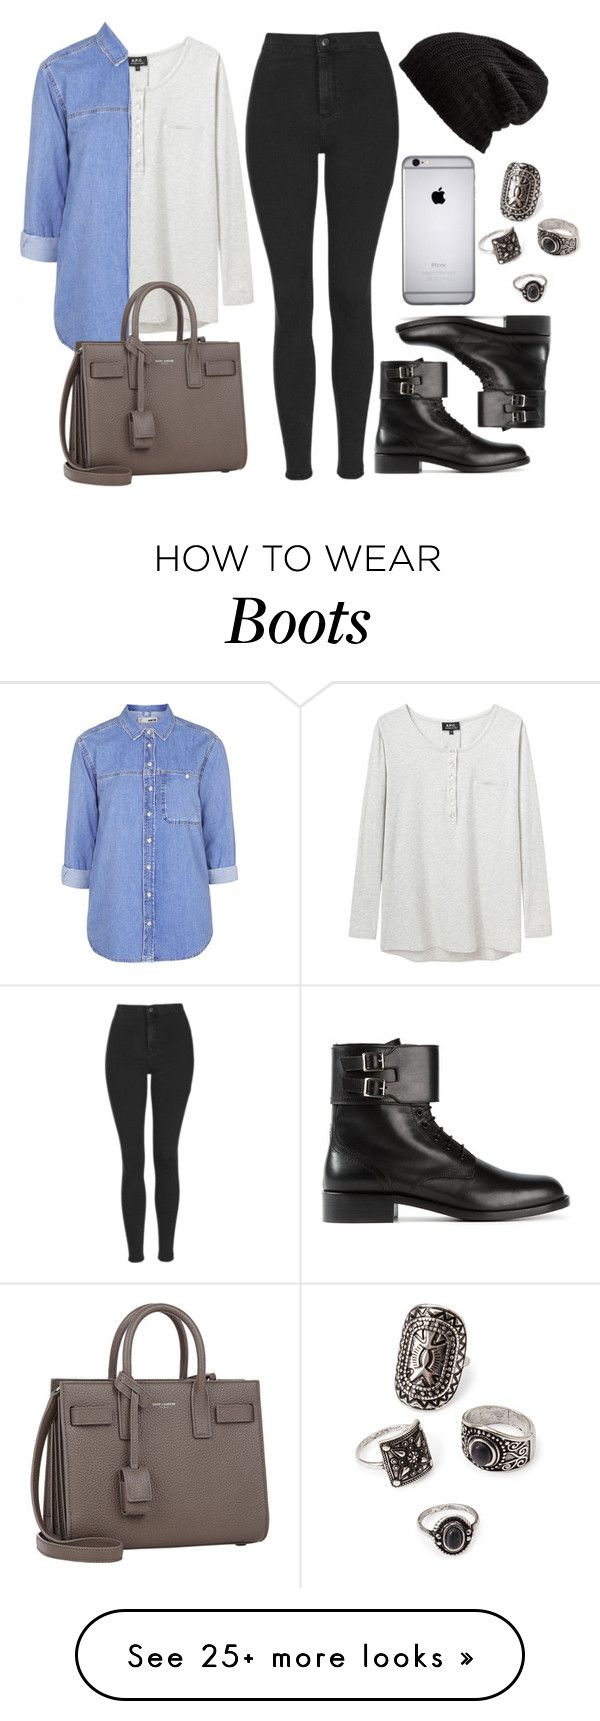 """Style #9798"" by vany-alvarado on Polyvore featuring A.P.C., Topshop, Yves Saint Laurent, Free People, Forever 21, women's clothing, women, female, woman and misses"